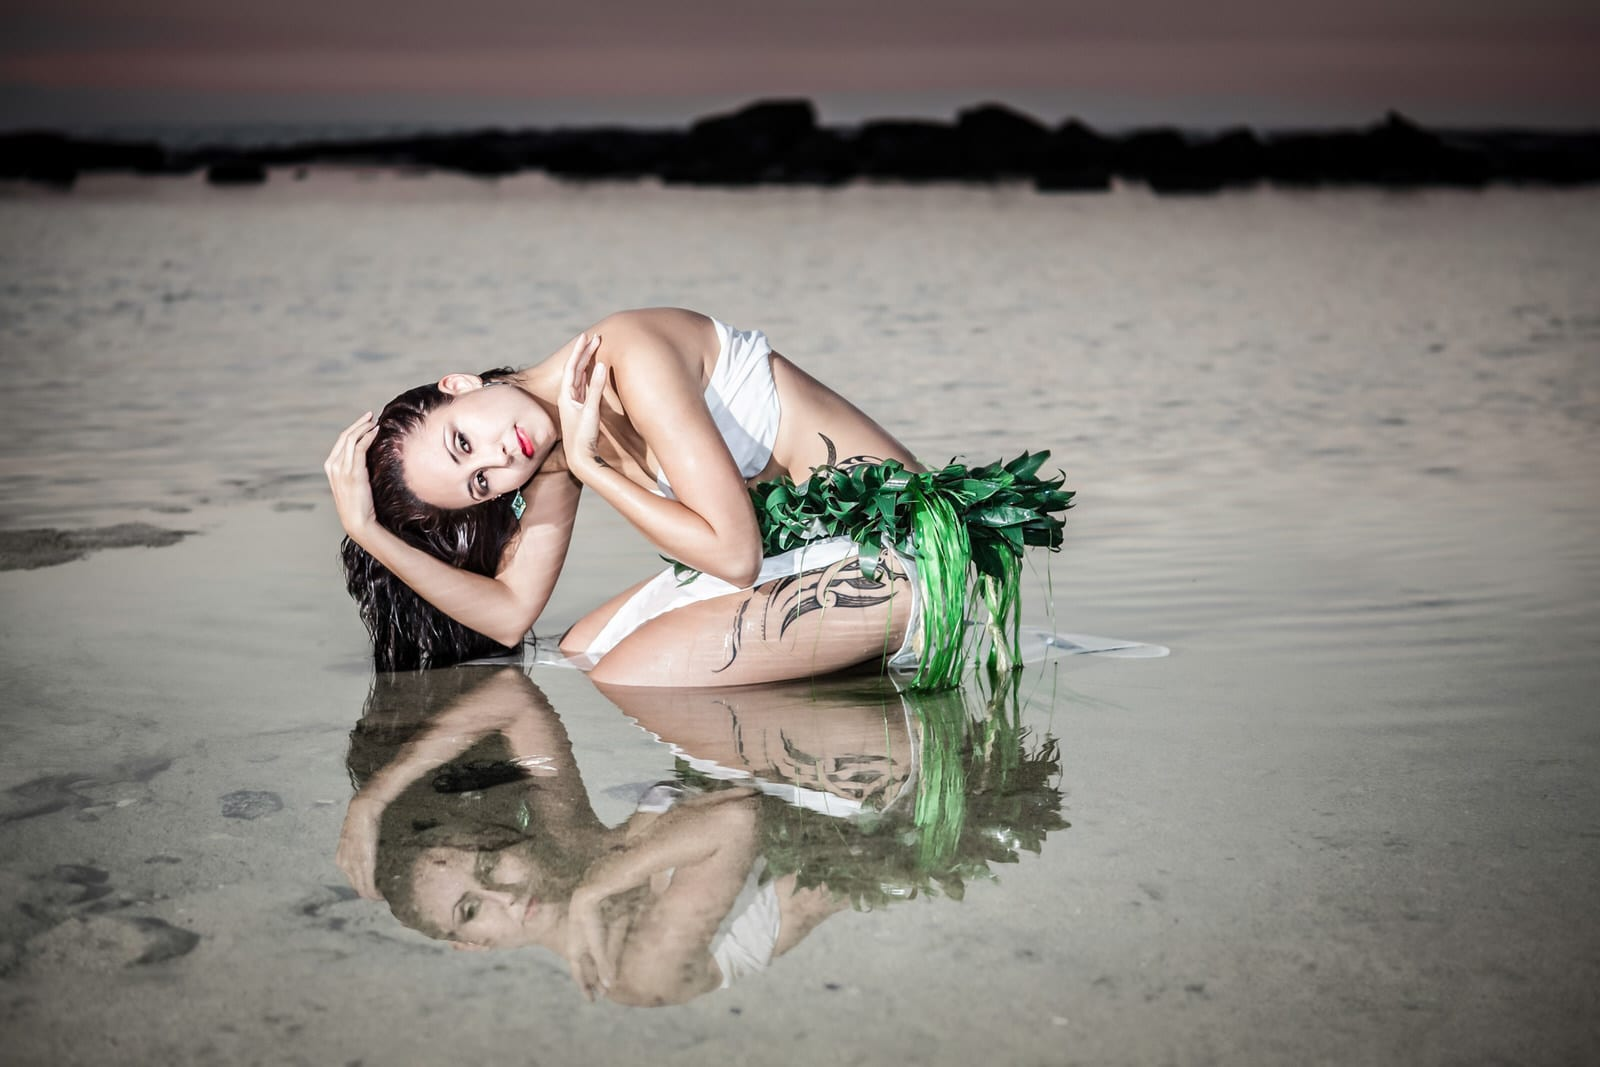 Polynesian_Reflection_Dancer_Photography_by_Ranae_Keane_-_Bamsey_EMotionGalleries.jpg